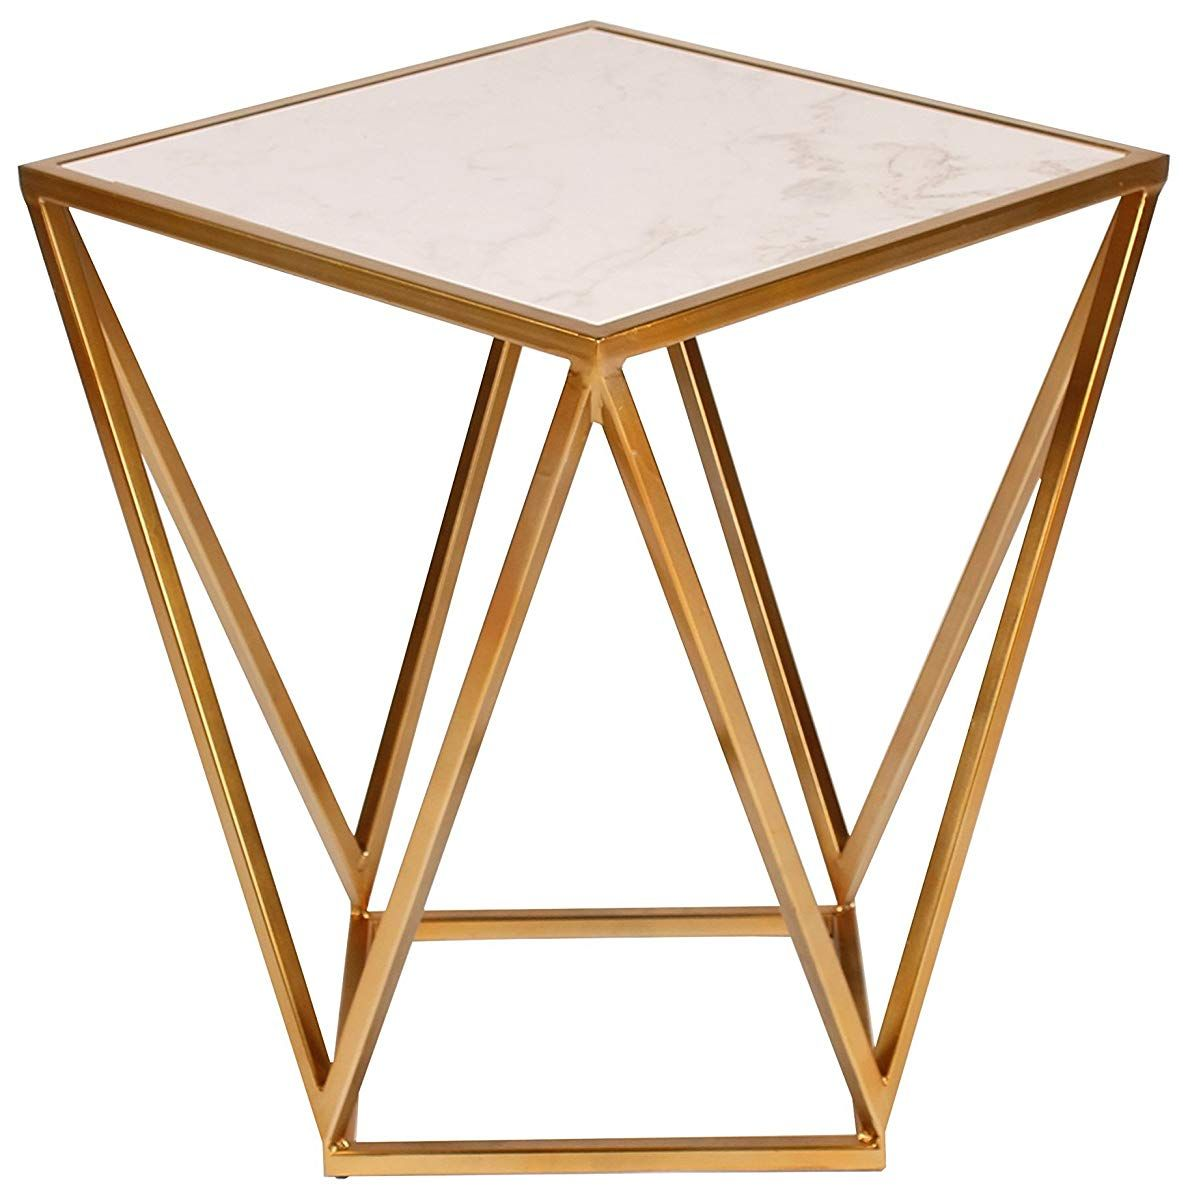 metal side accent table with marble top gold end diy nightstand west elm white console rustic telephone chair round glass patio small plant umbrella wicker furniture pretty beds